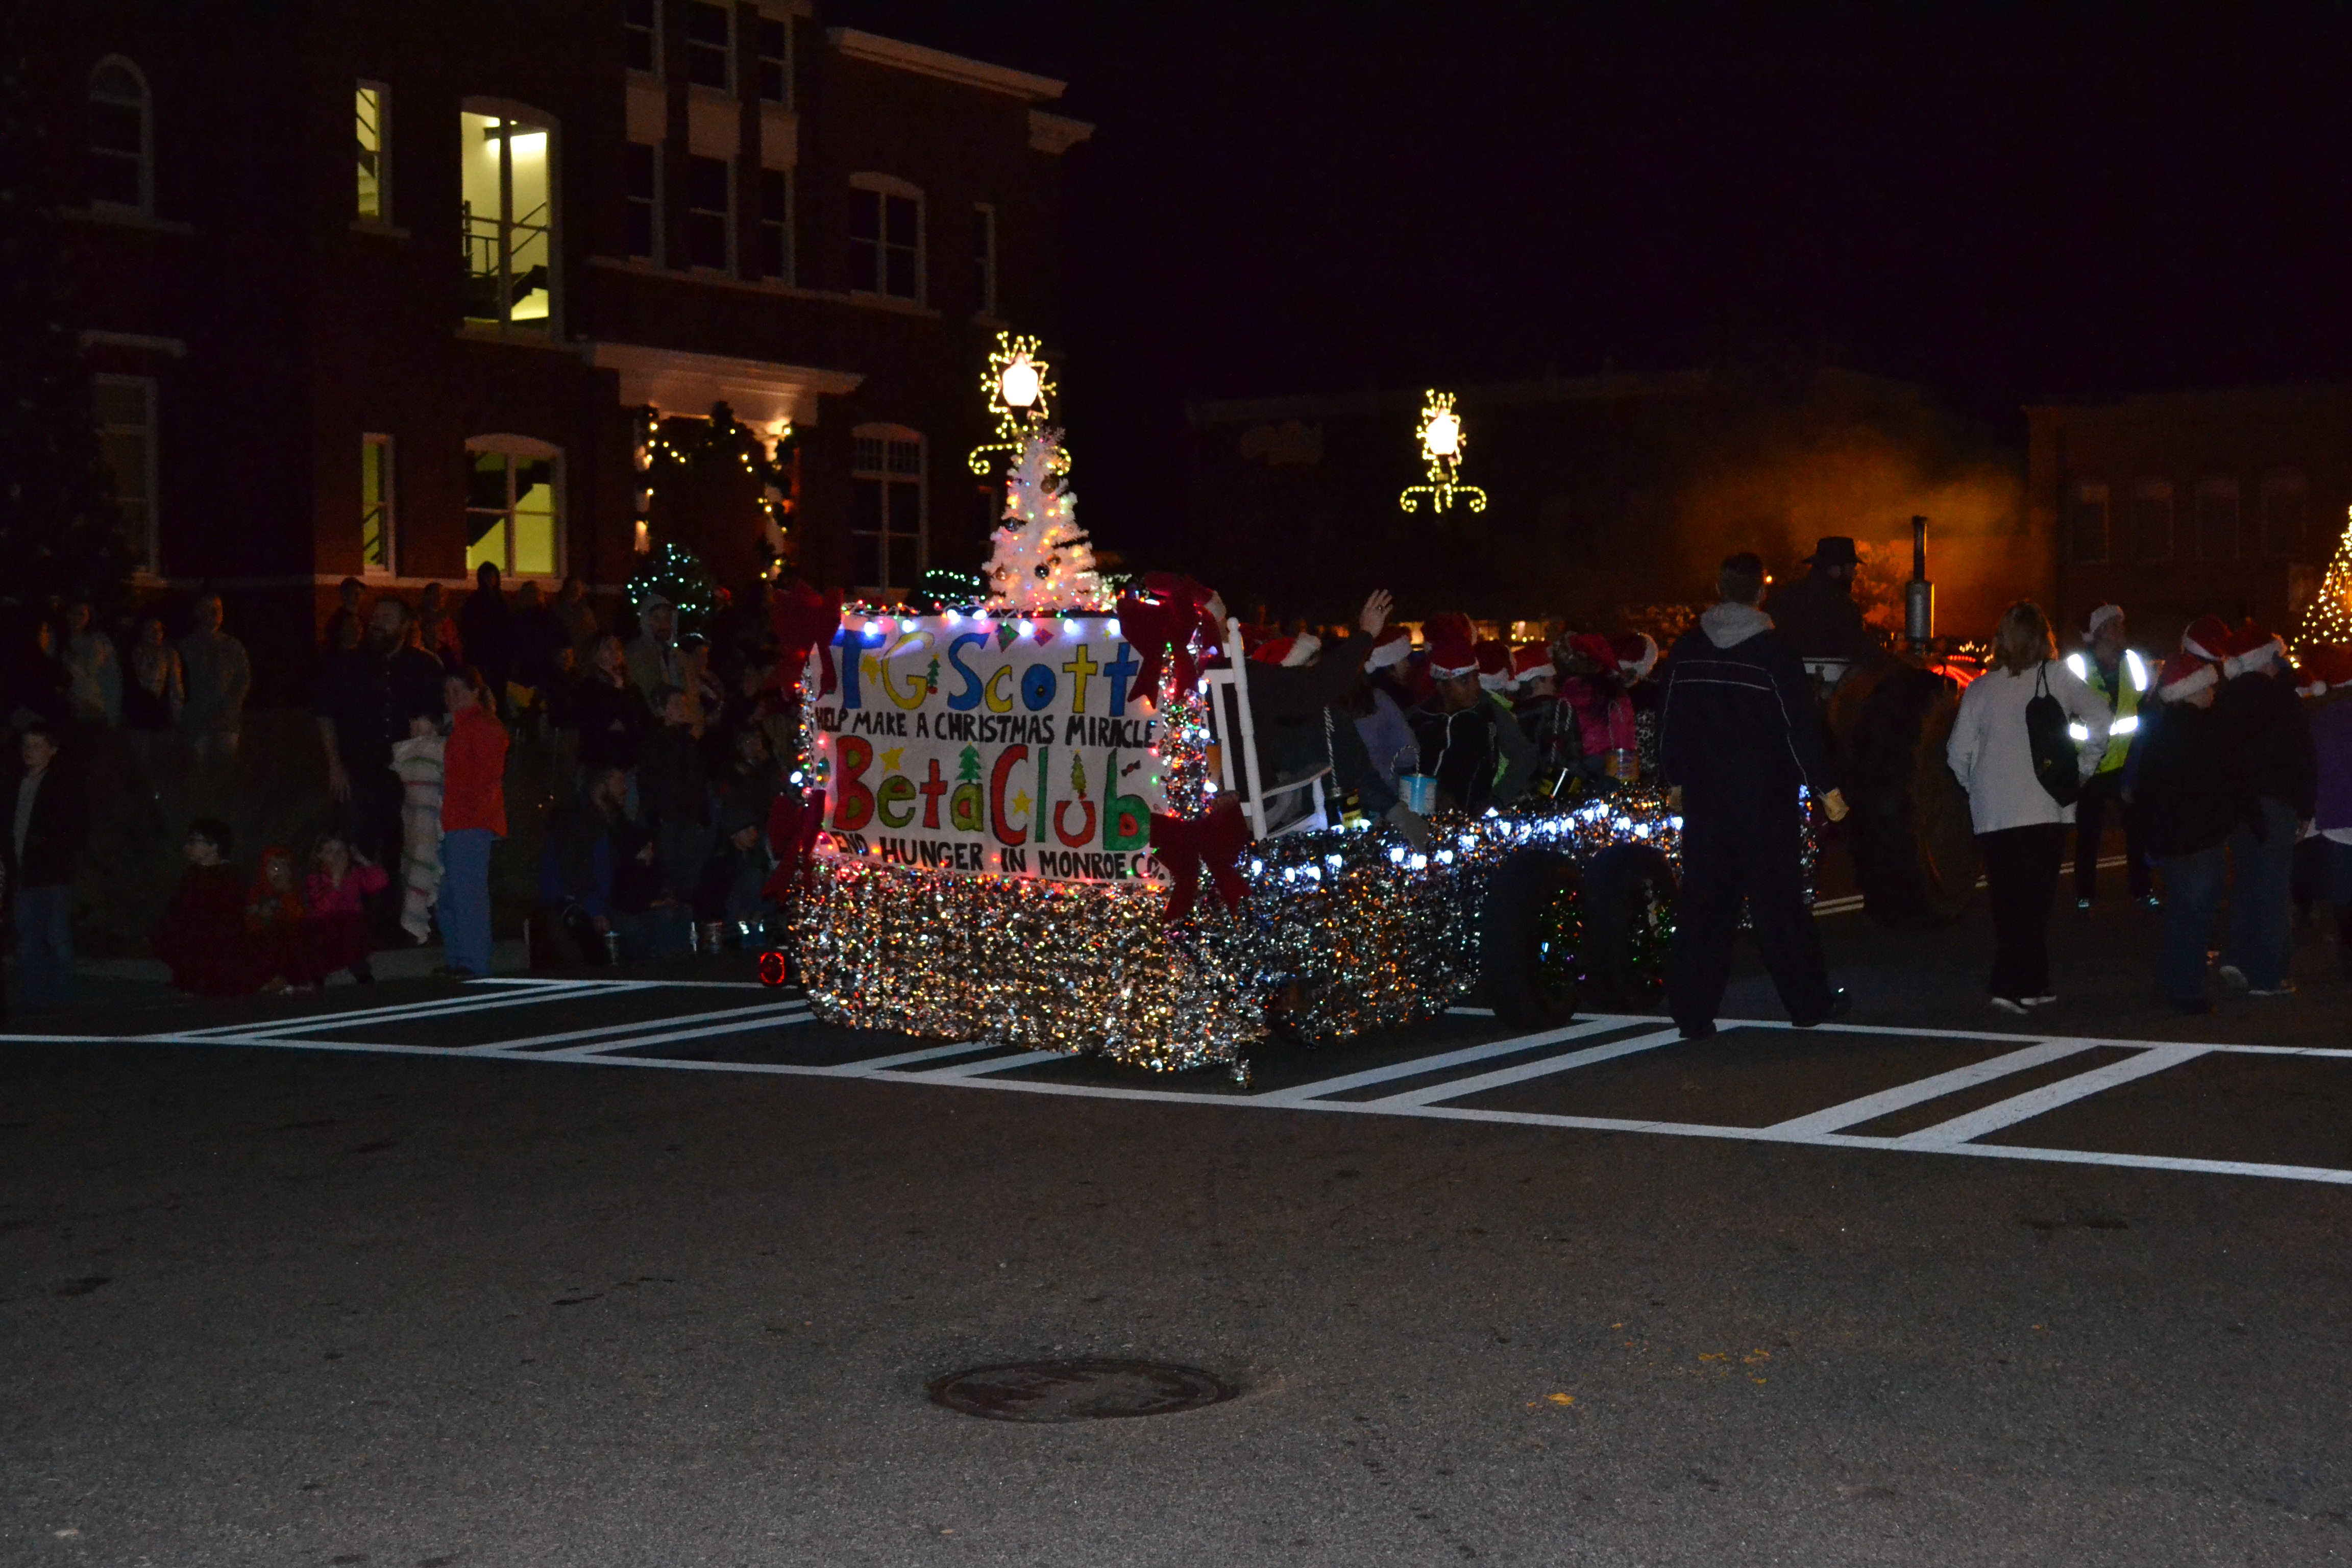 Forsyth Christmas Parade 2020 Hometown Holidays Parade   Forsyth Monroe County Chamber of